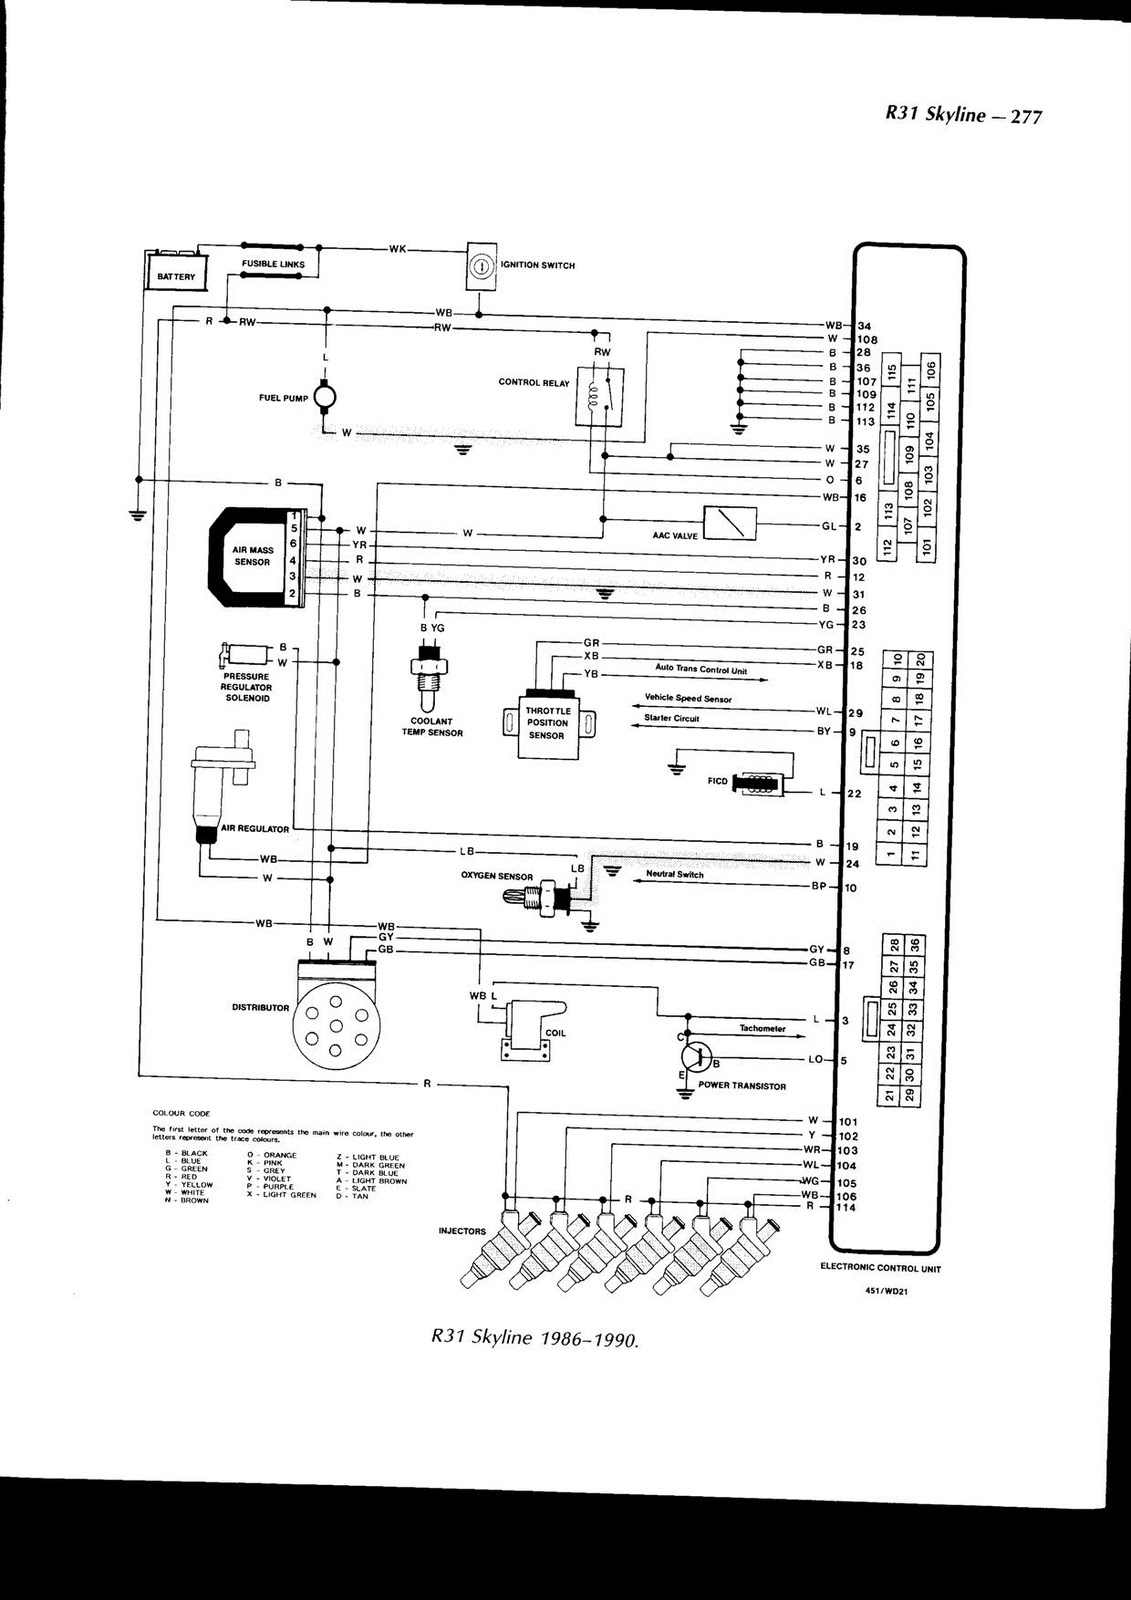 Wiring Diagram In Addition 2000 Firebird Headlight Wiring Diagram